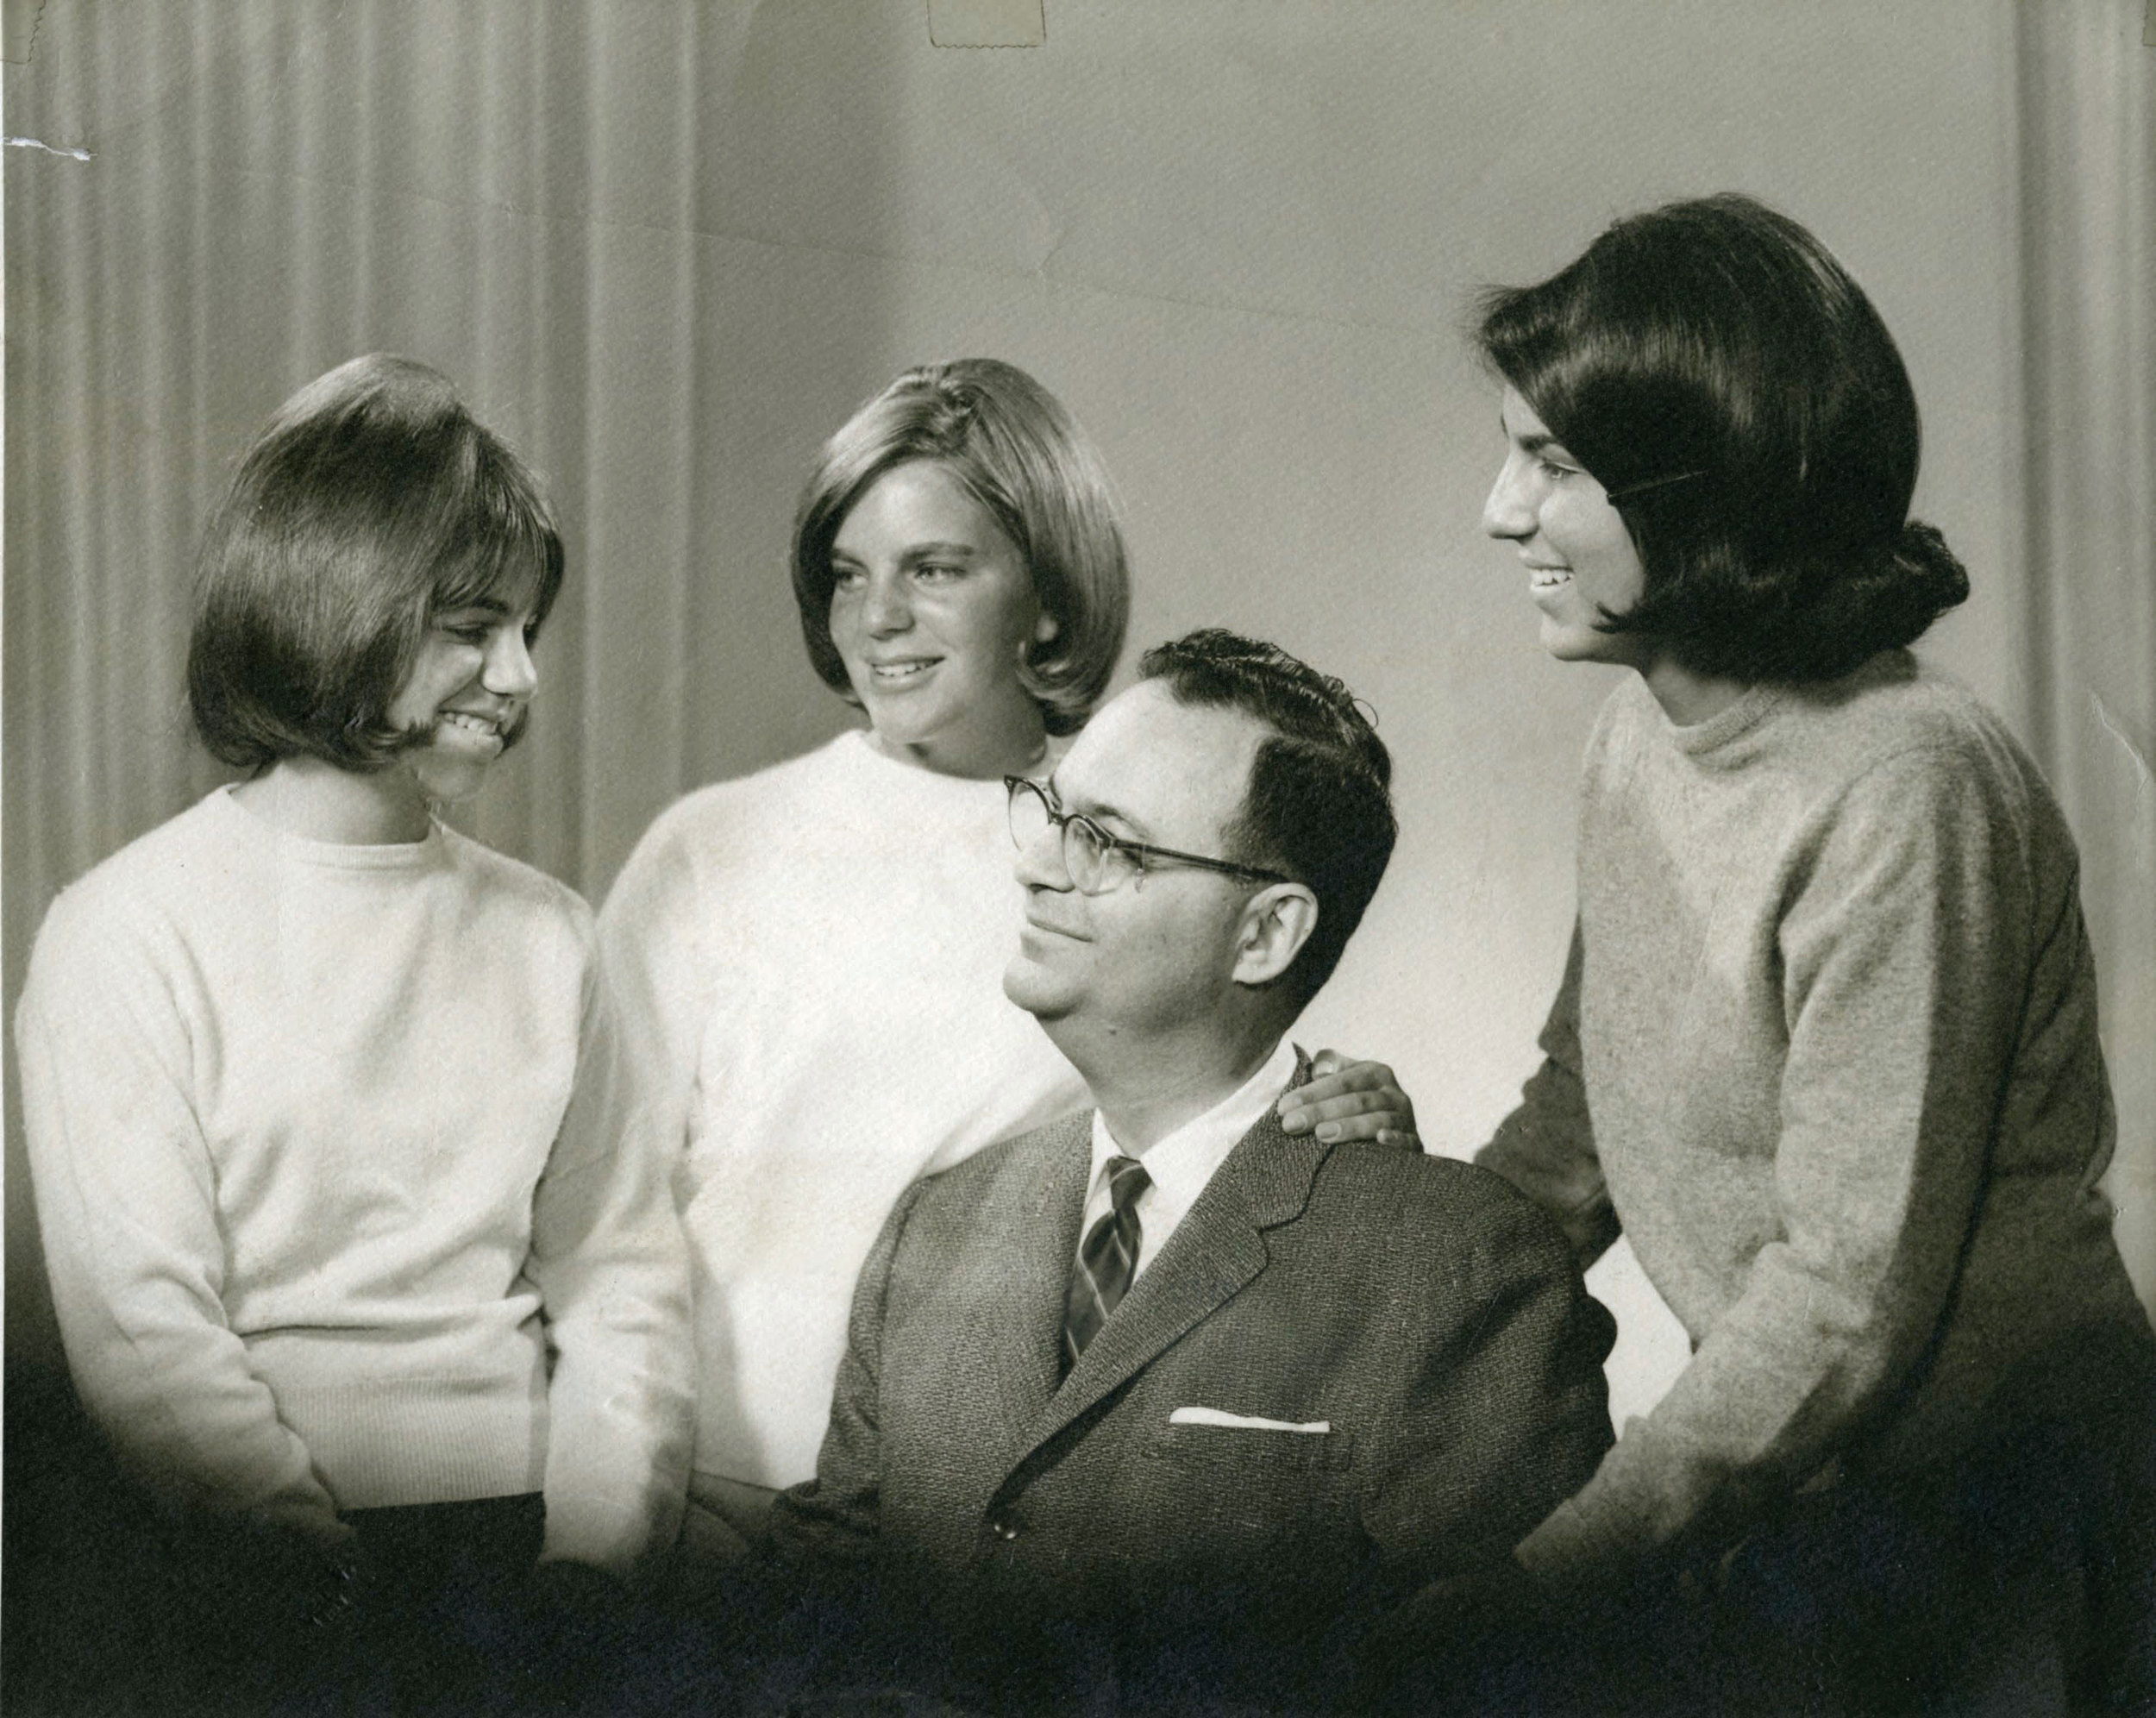 Roger E. Joseph with his daughters Ellen Joseph, Linda Karshan, and Roxane Leopold, circa 1965.